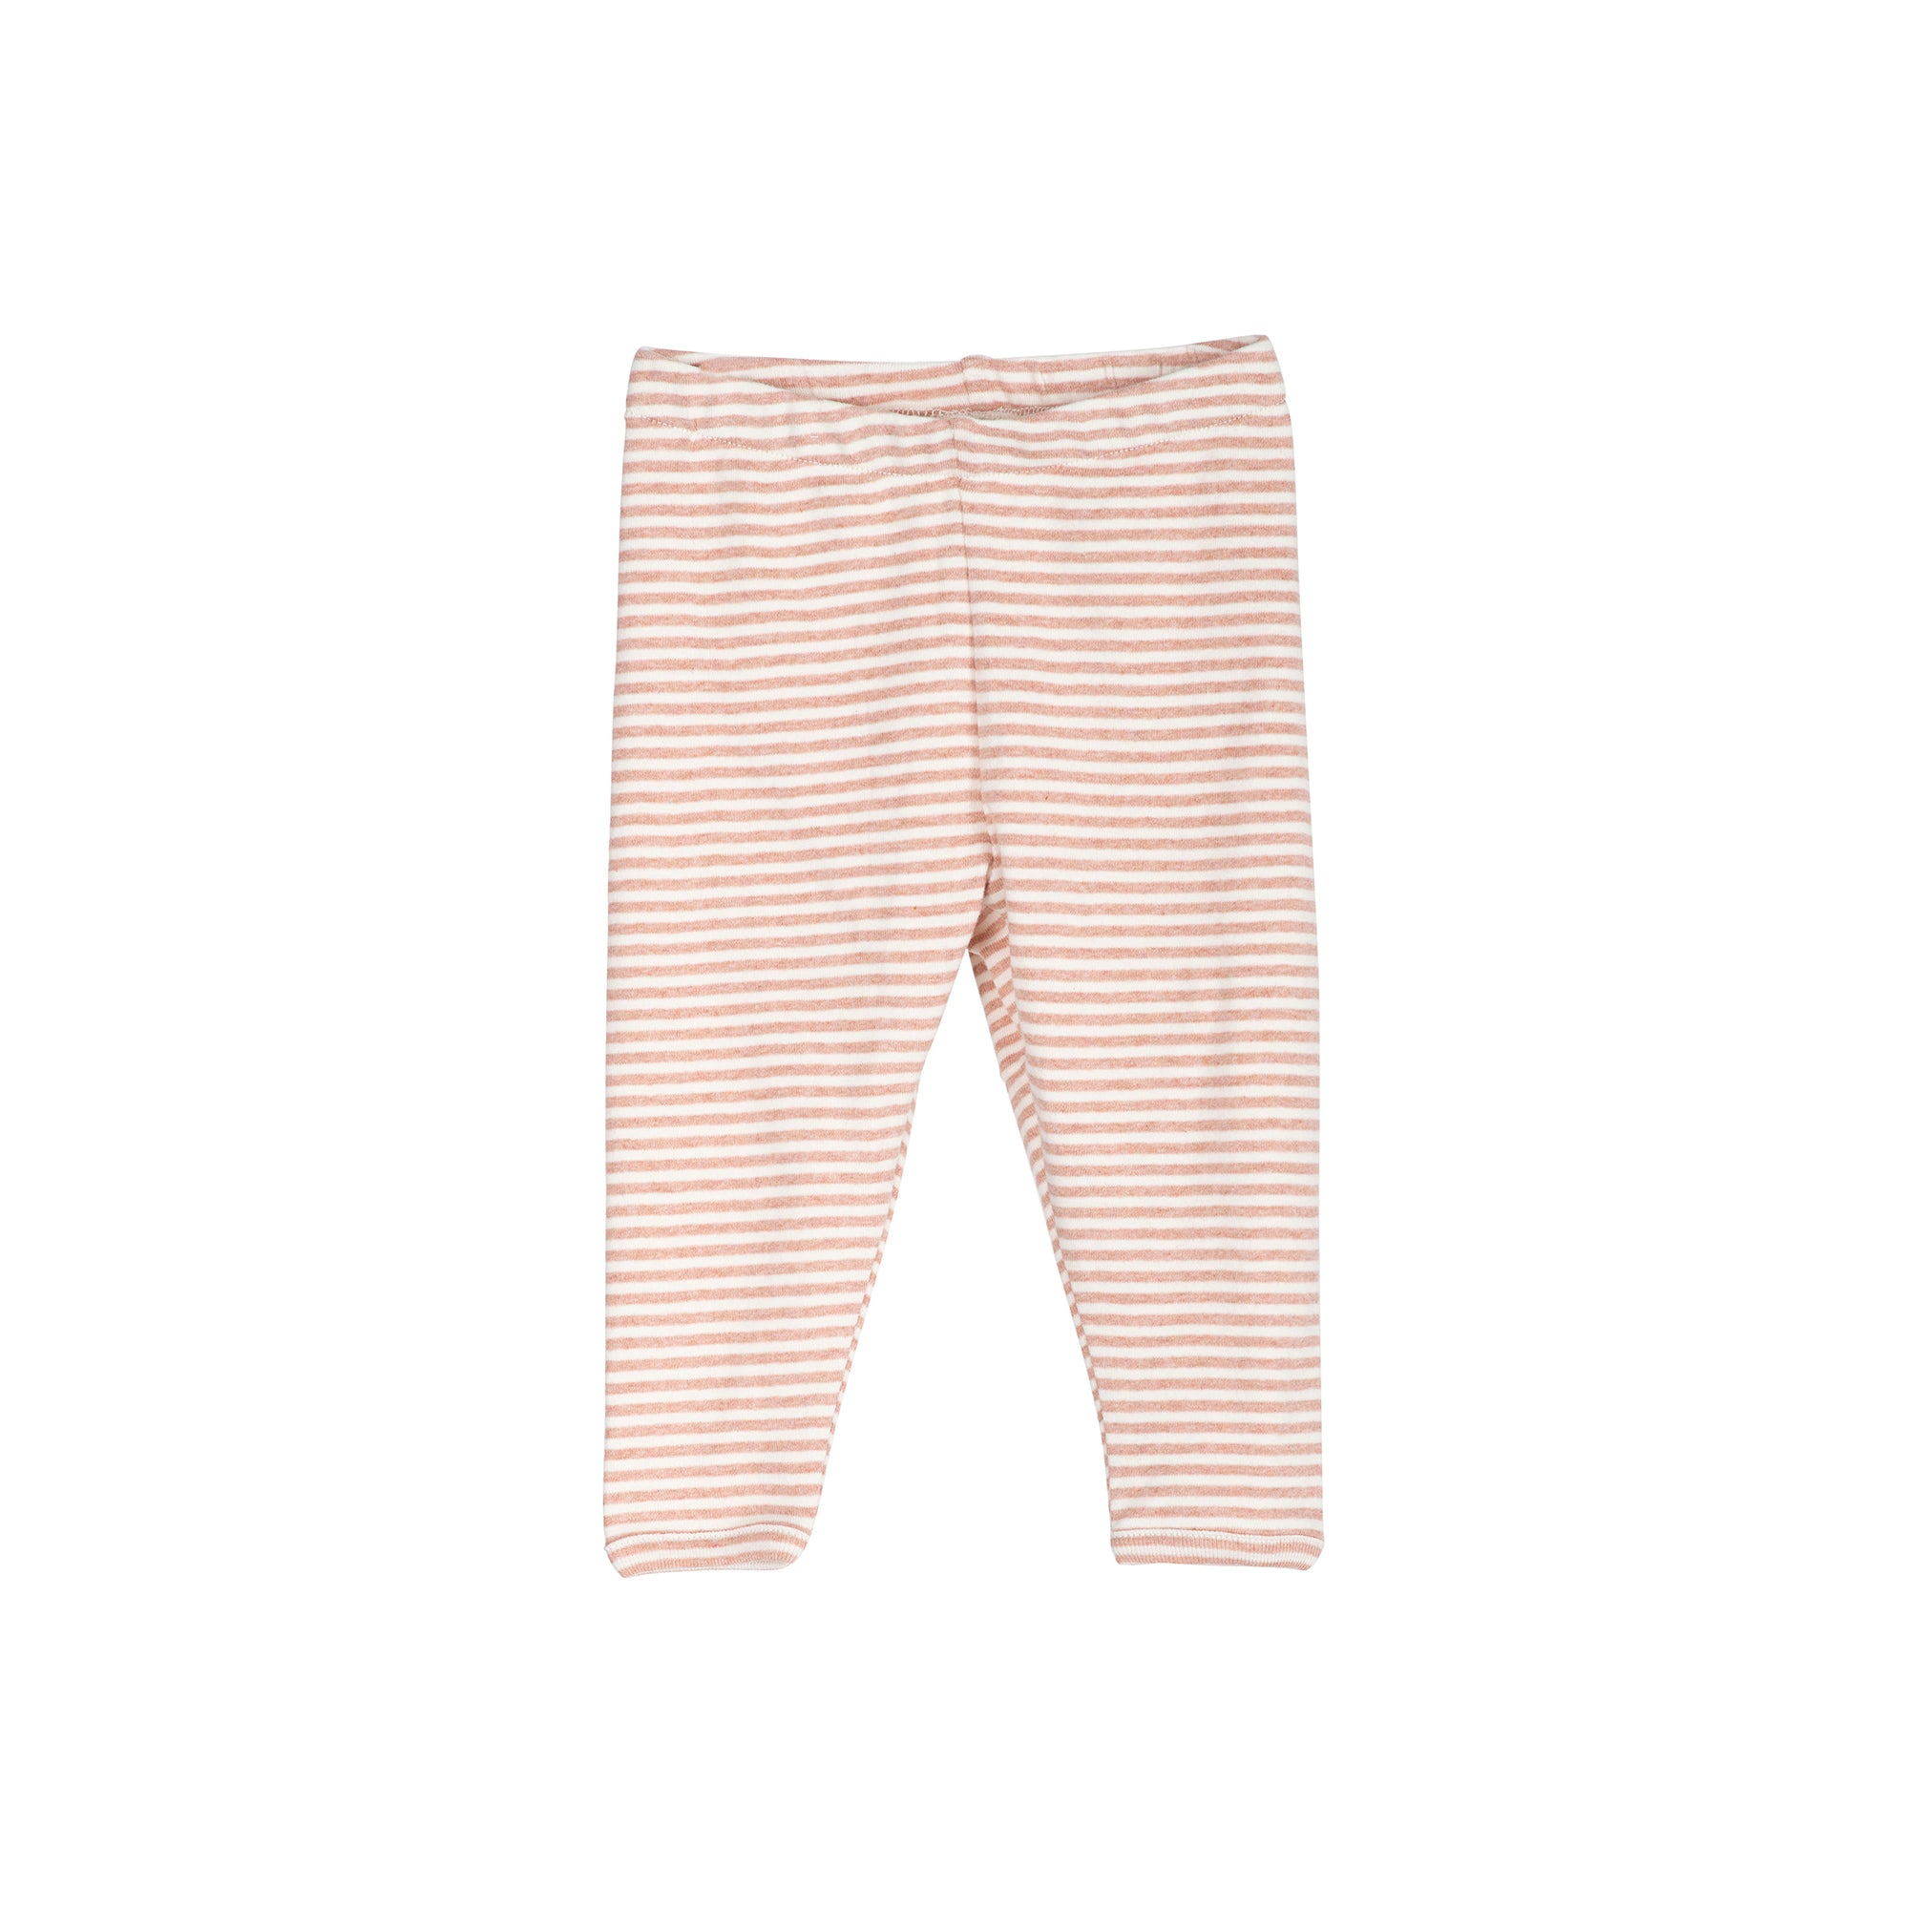 Serendipity Baby Leggings - Stribe Clay